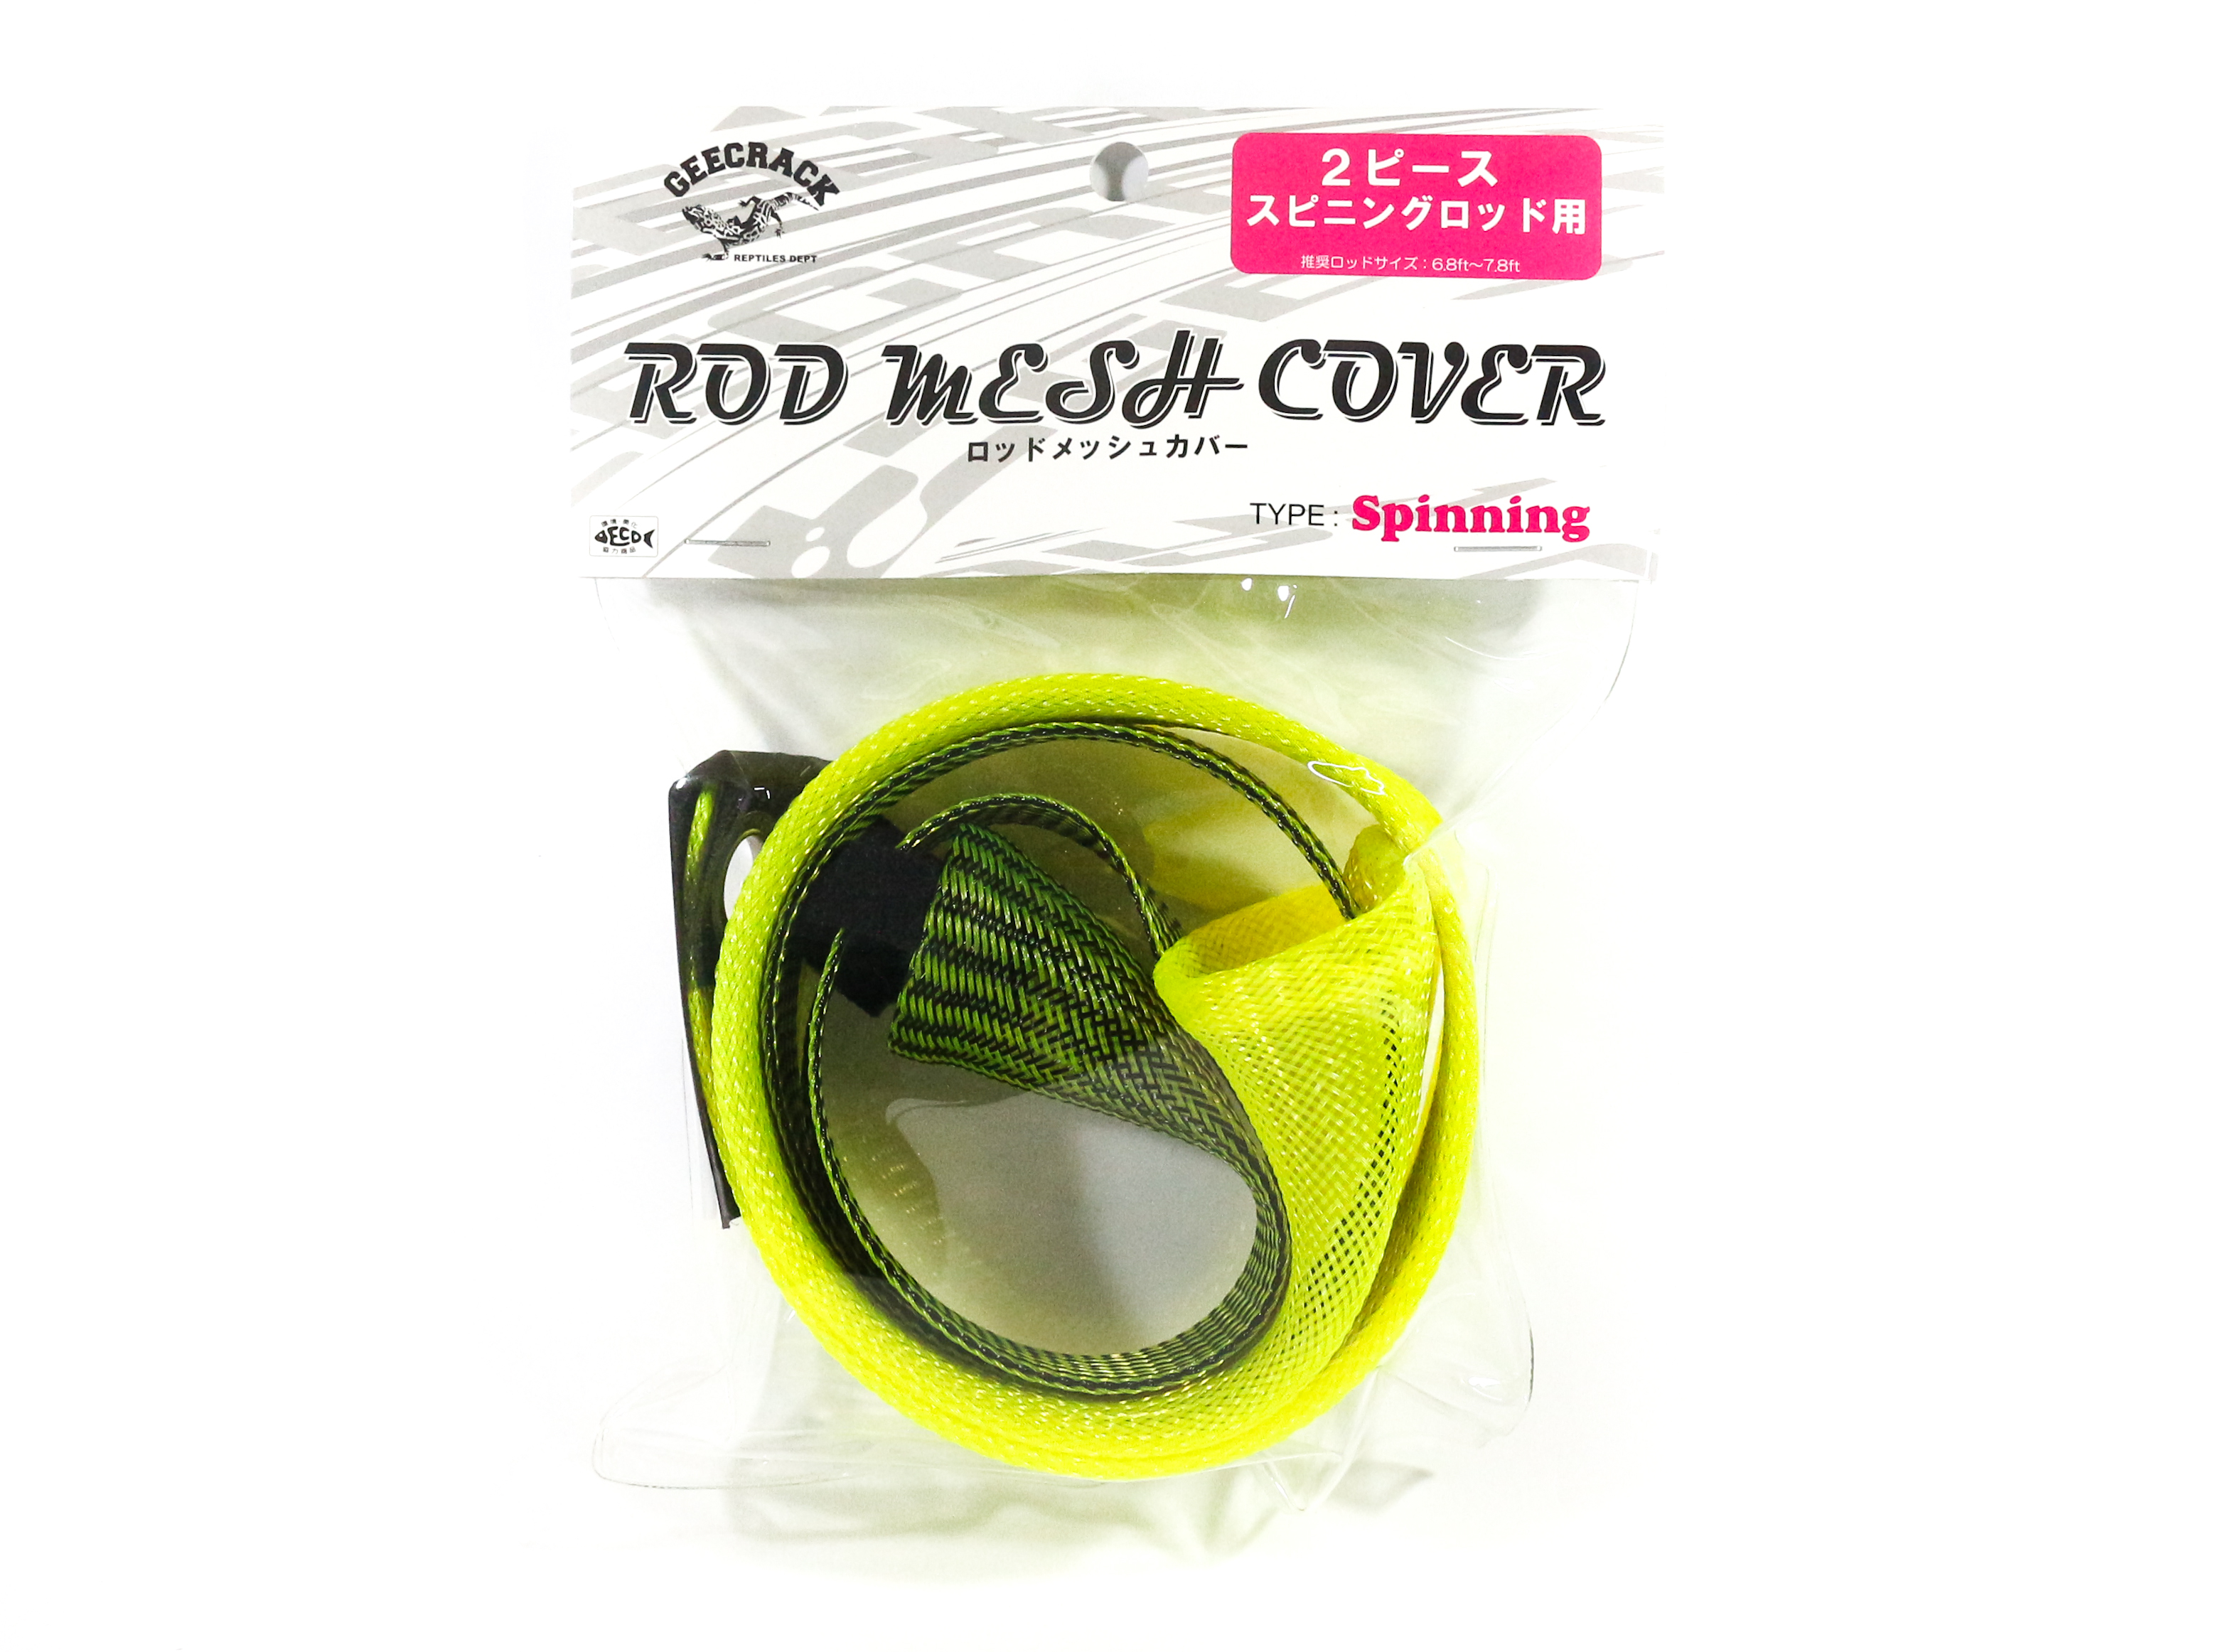 Sale Gee Crack GEE 7172 Rod Mesh Cover Spin 2 Pc 110 - 60 , 40 cm Y (5247)